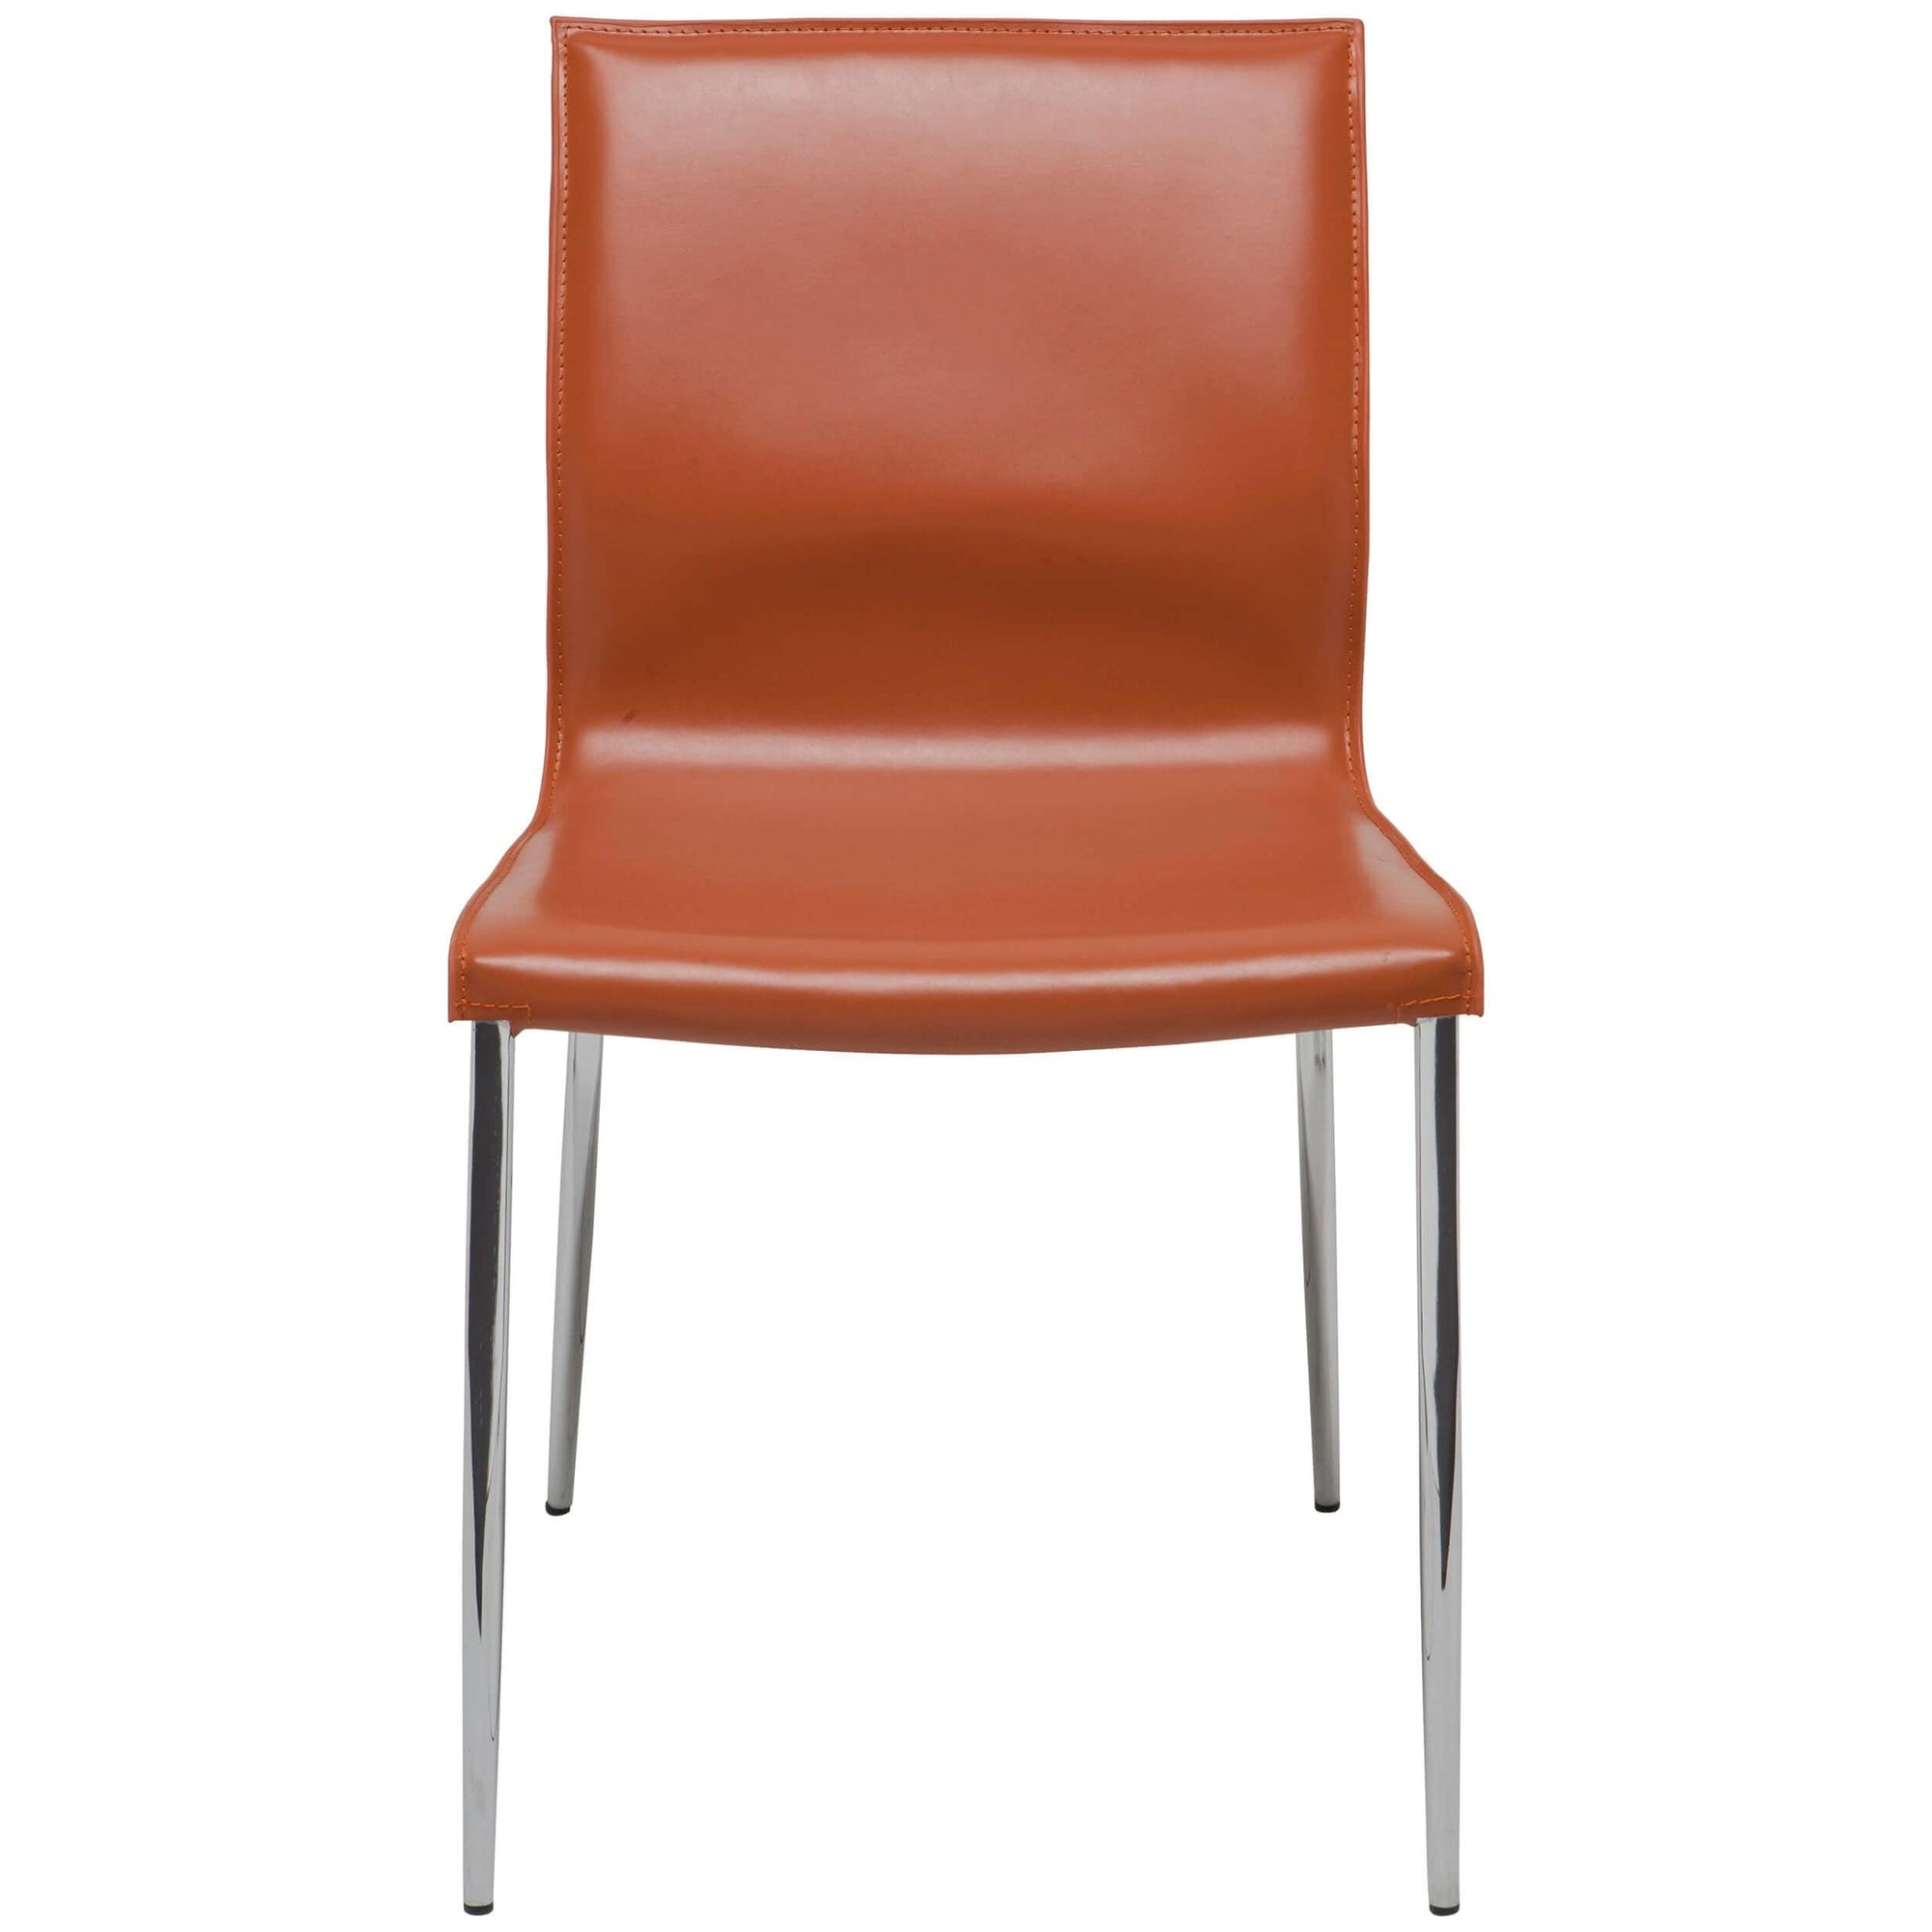 Marvelous Colter Leather Dining Chair Ochre Chrome Legs High Gmtry Best Dining Table And Chair Ideas Images Gmtryco